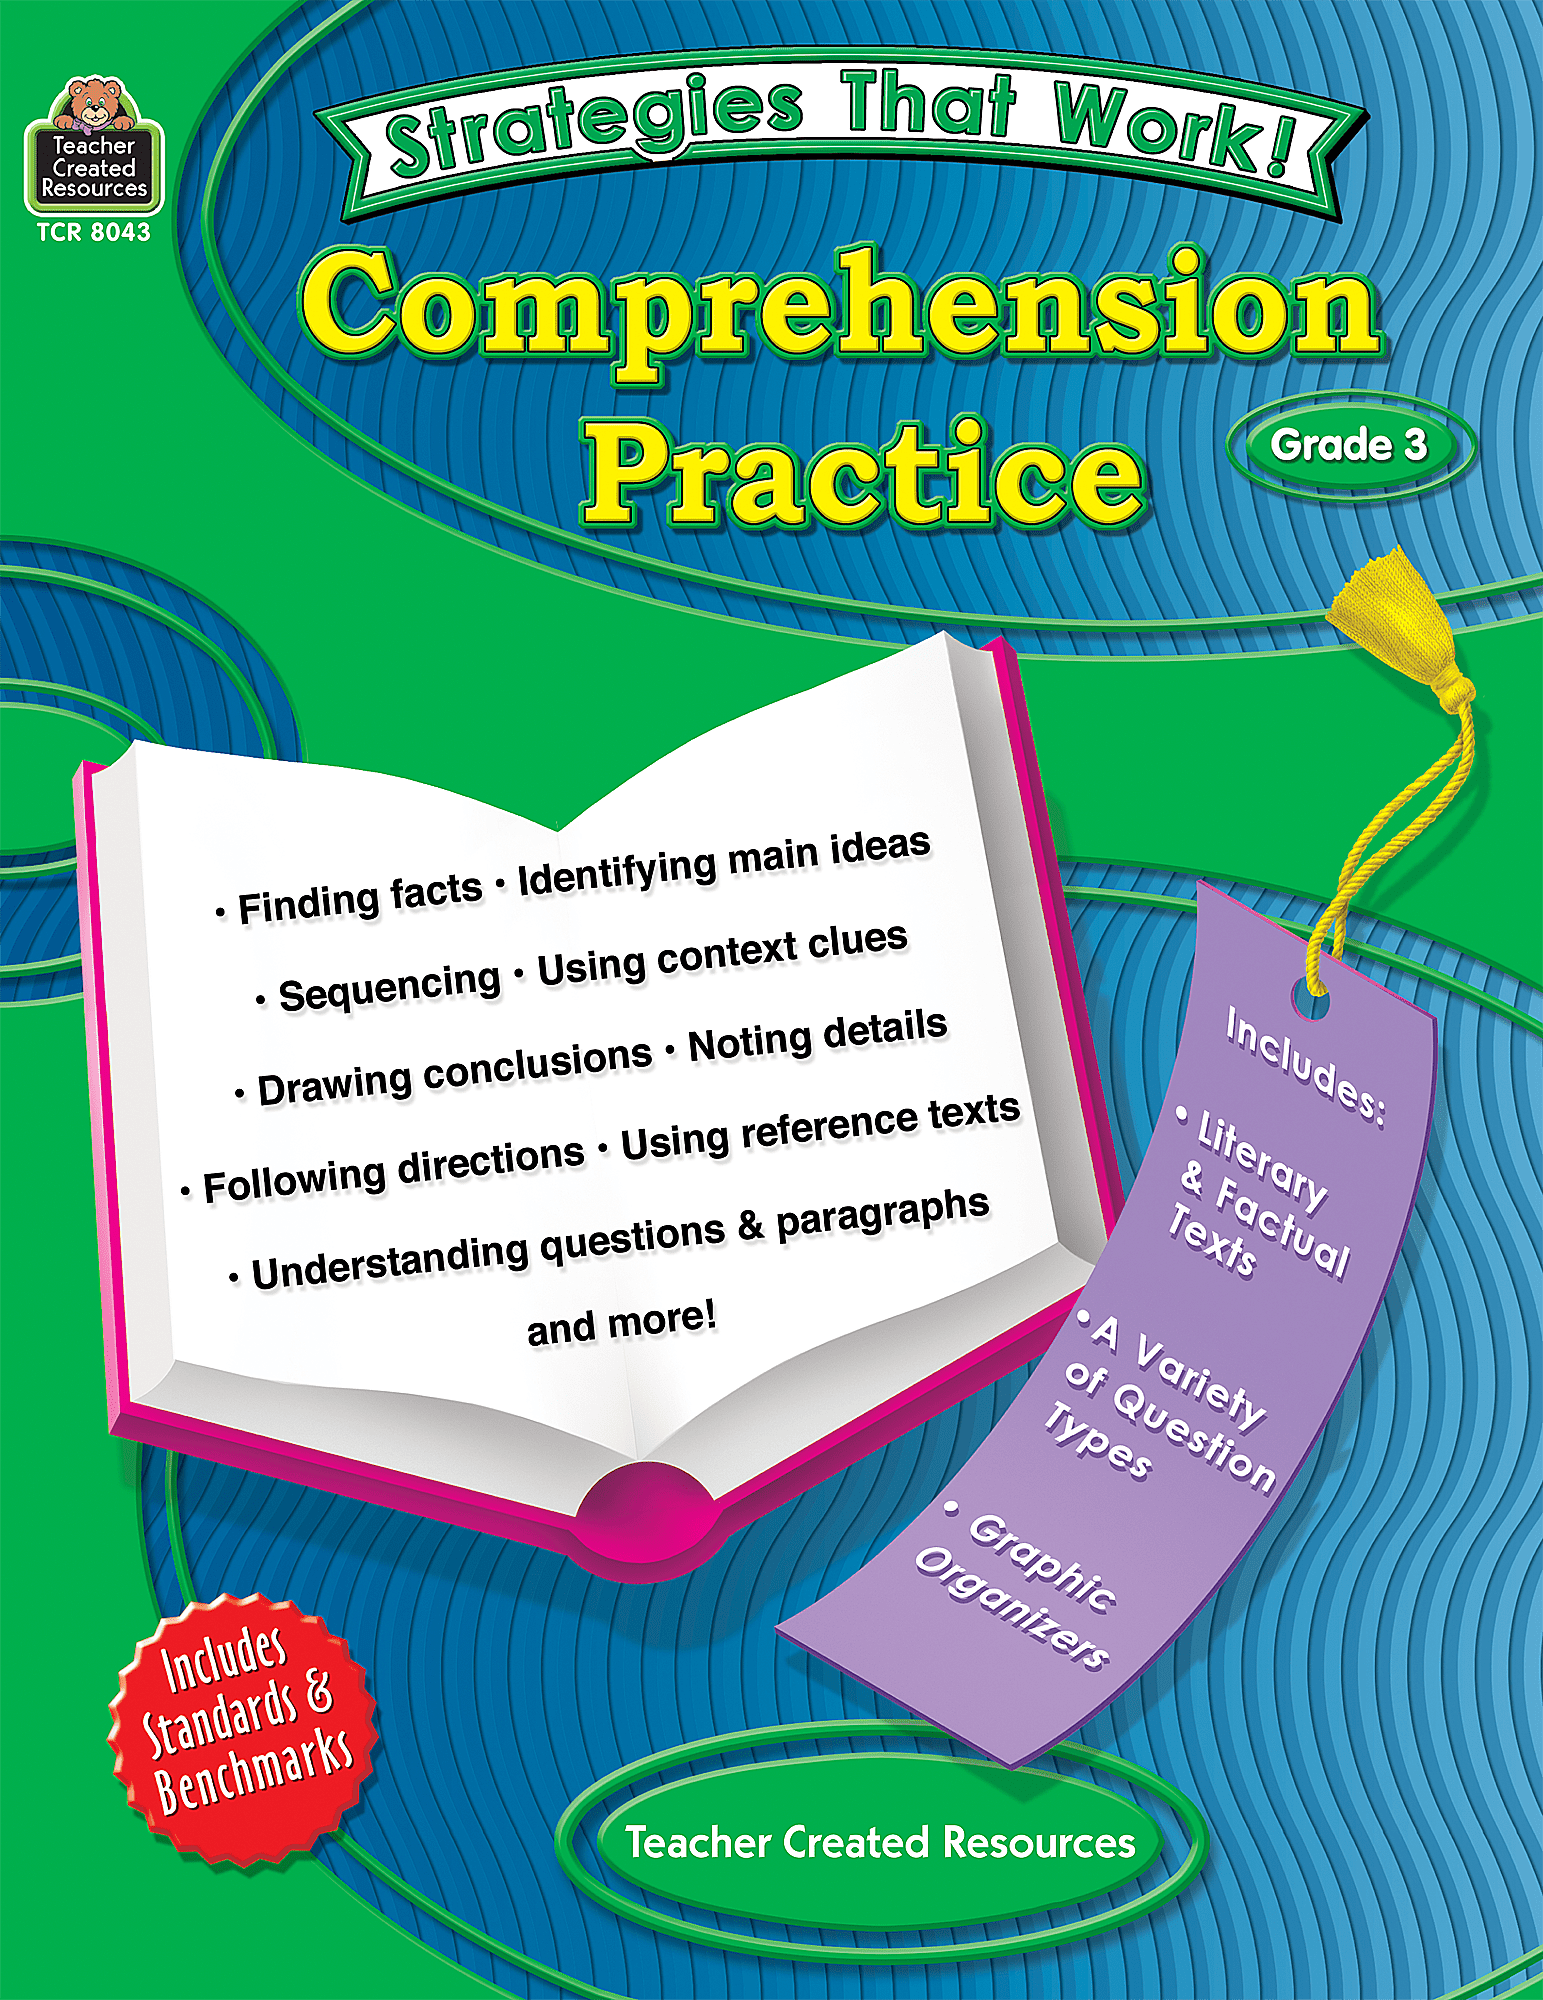 Strategies That Work Comprehension Practice Grade 3